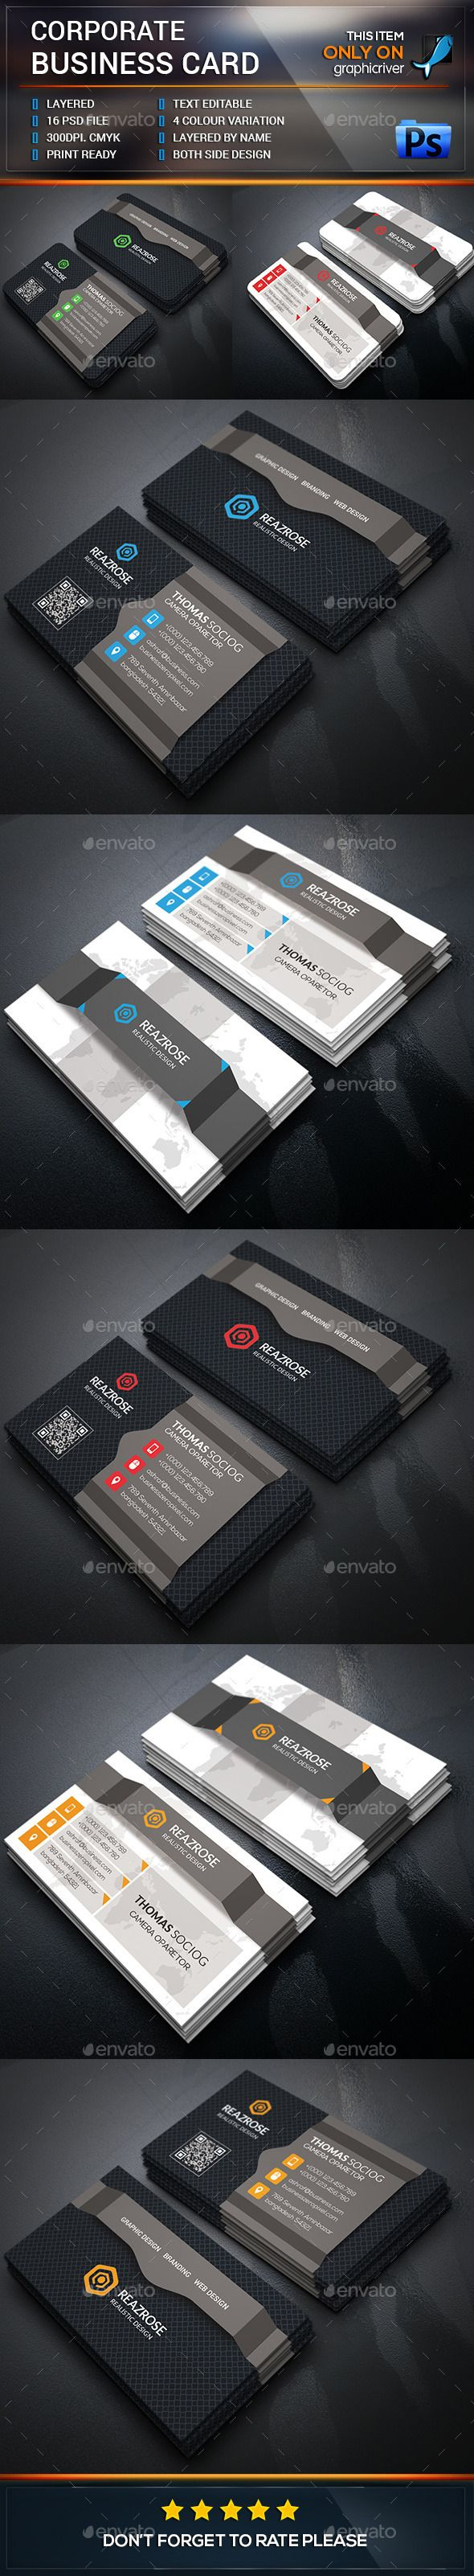 354 best business card images on Pinterest | Visual arts ...